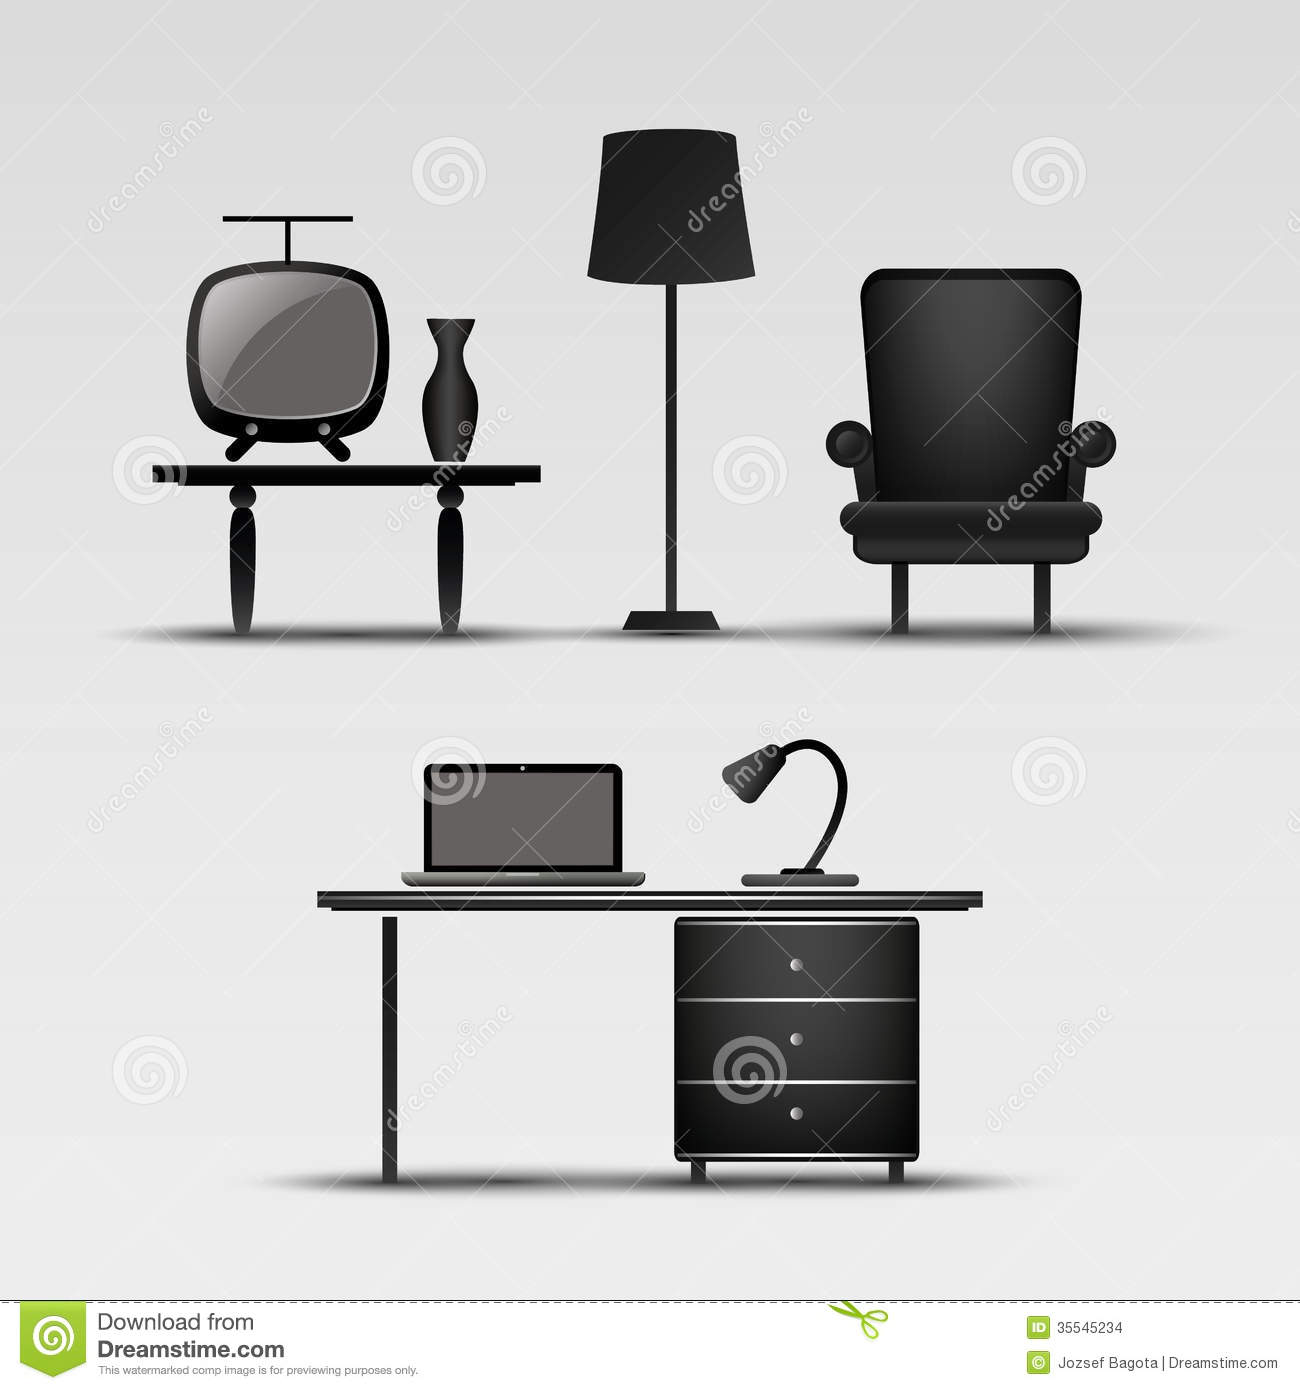 Clipart in home interiors.